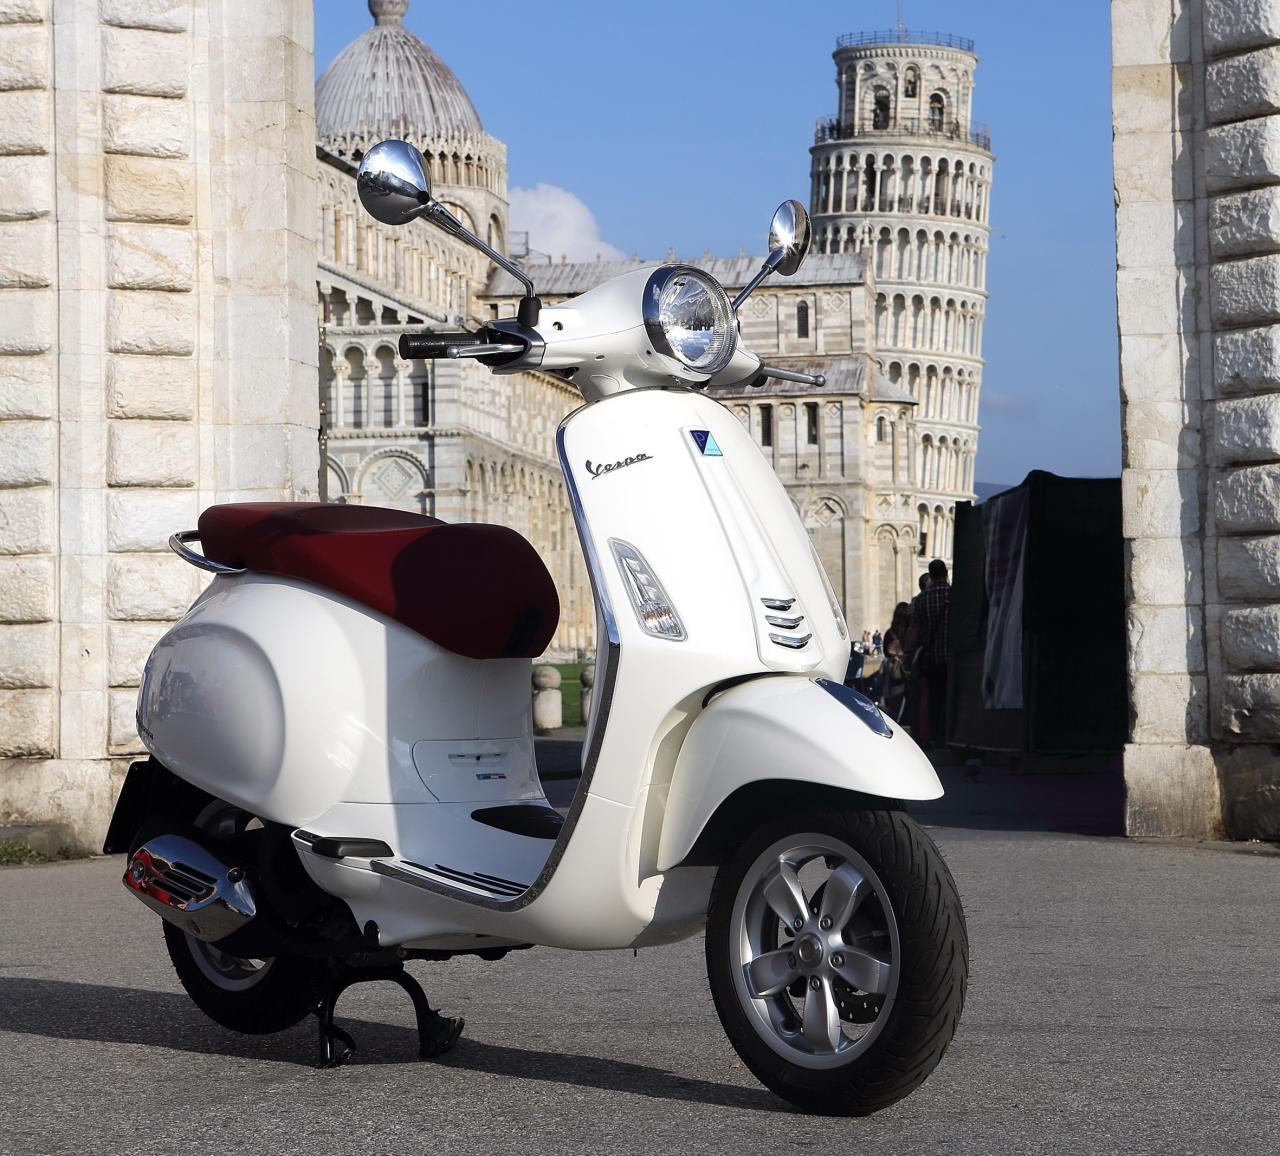 vespa 125 ne demarre plus